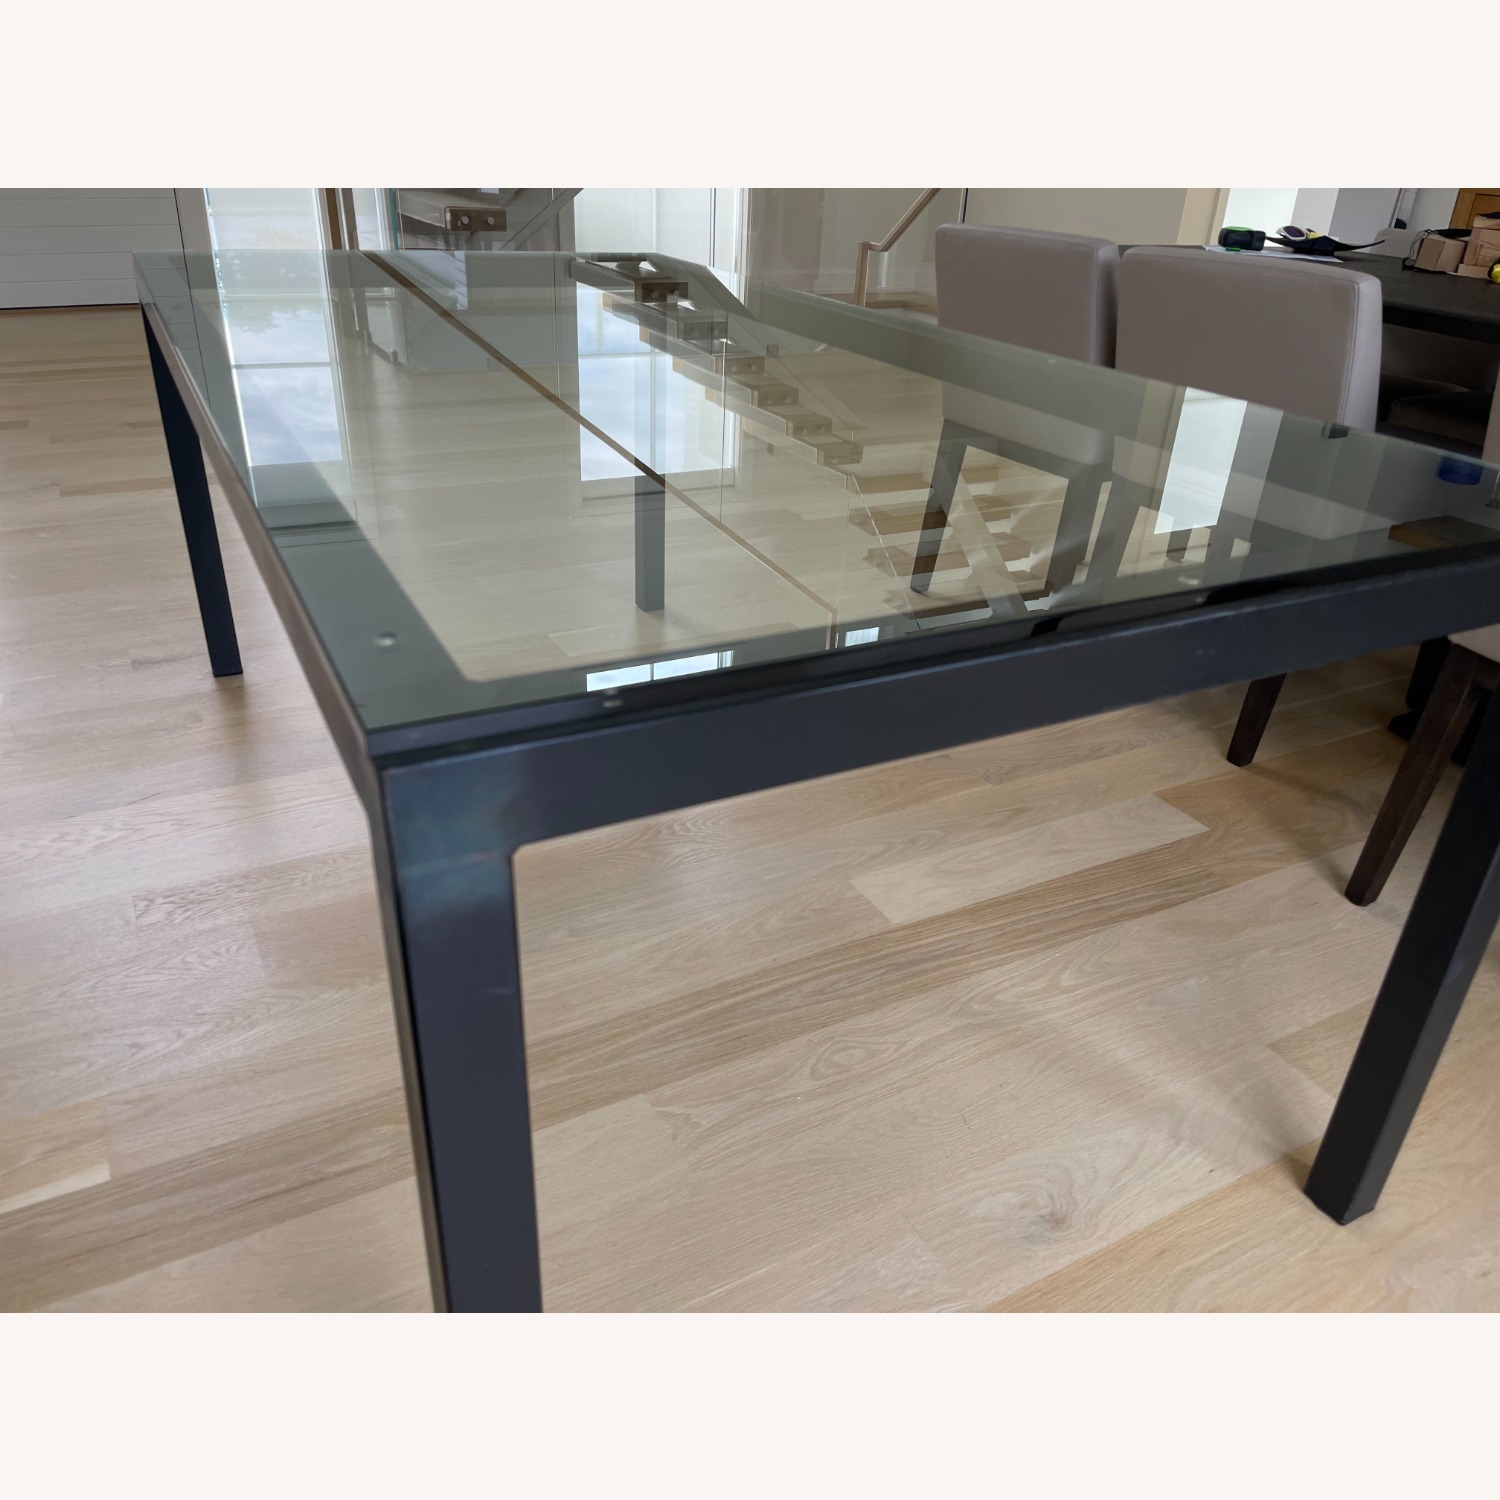 Room & Board Modern Parsons Kitchen Table - image-1